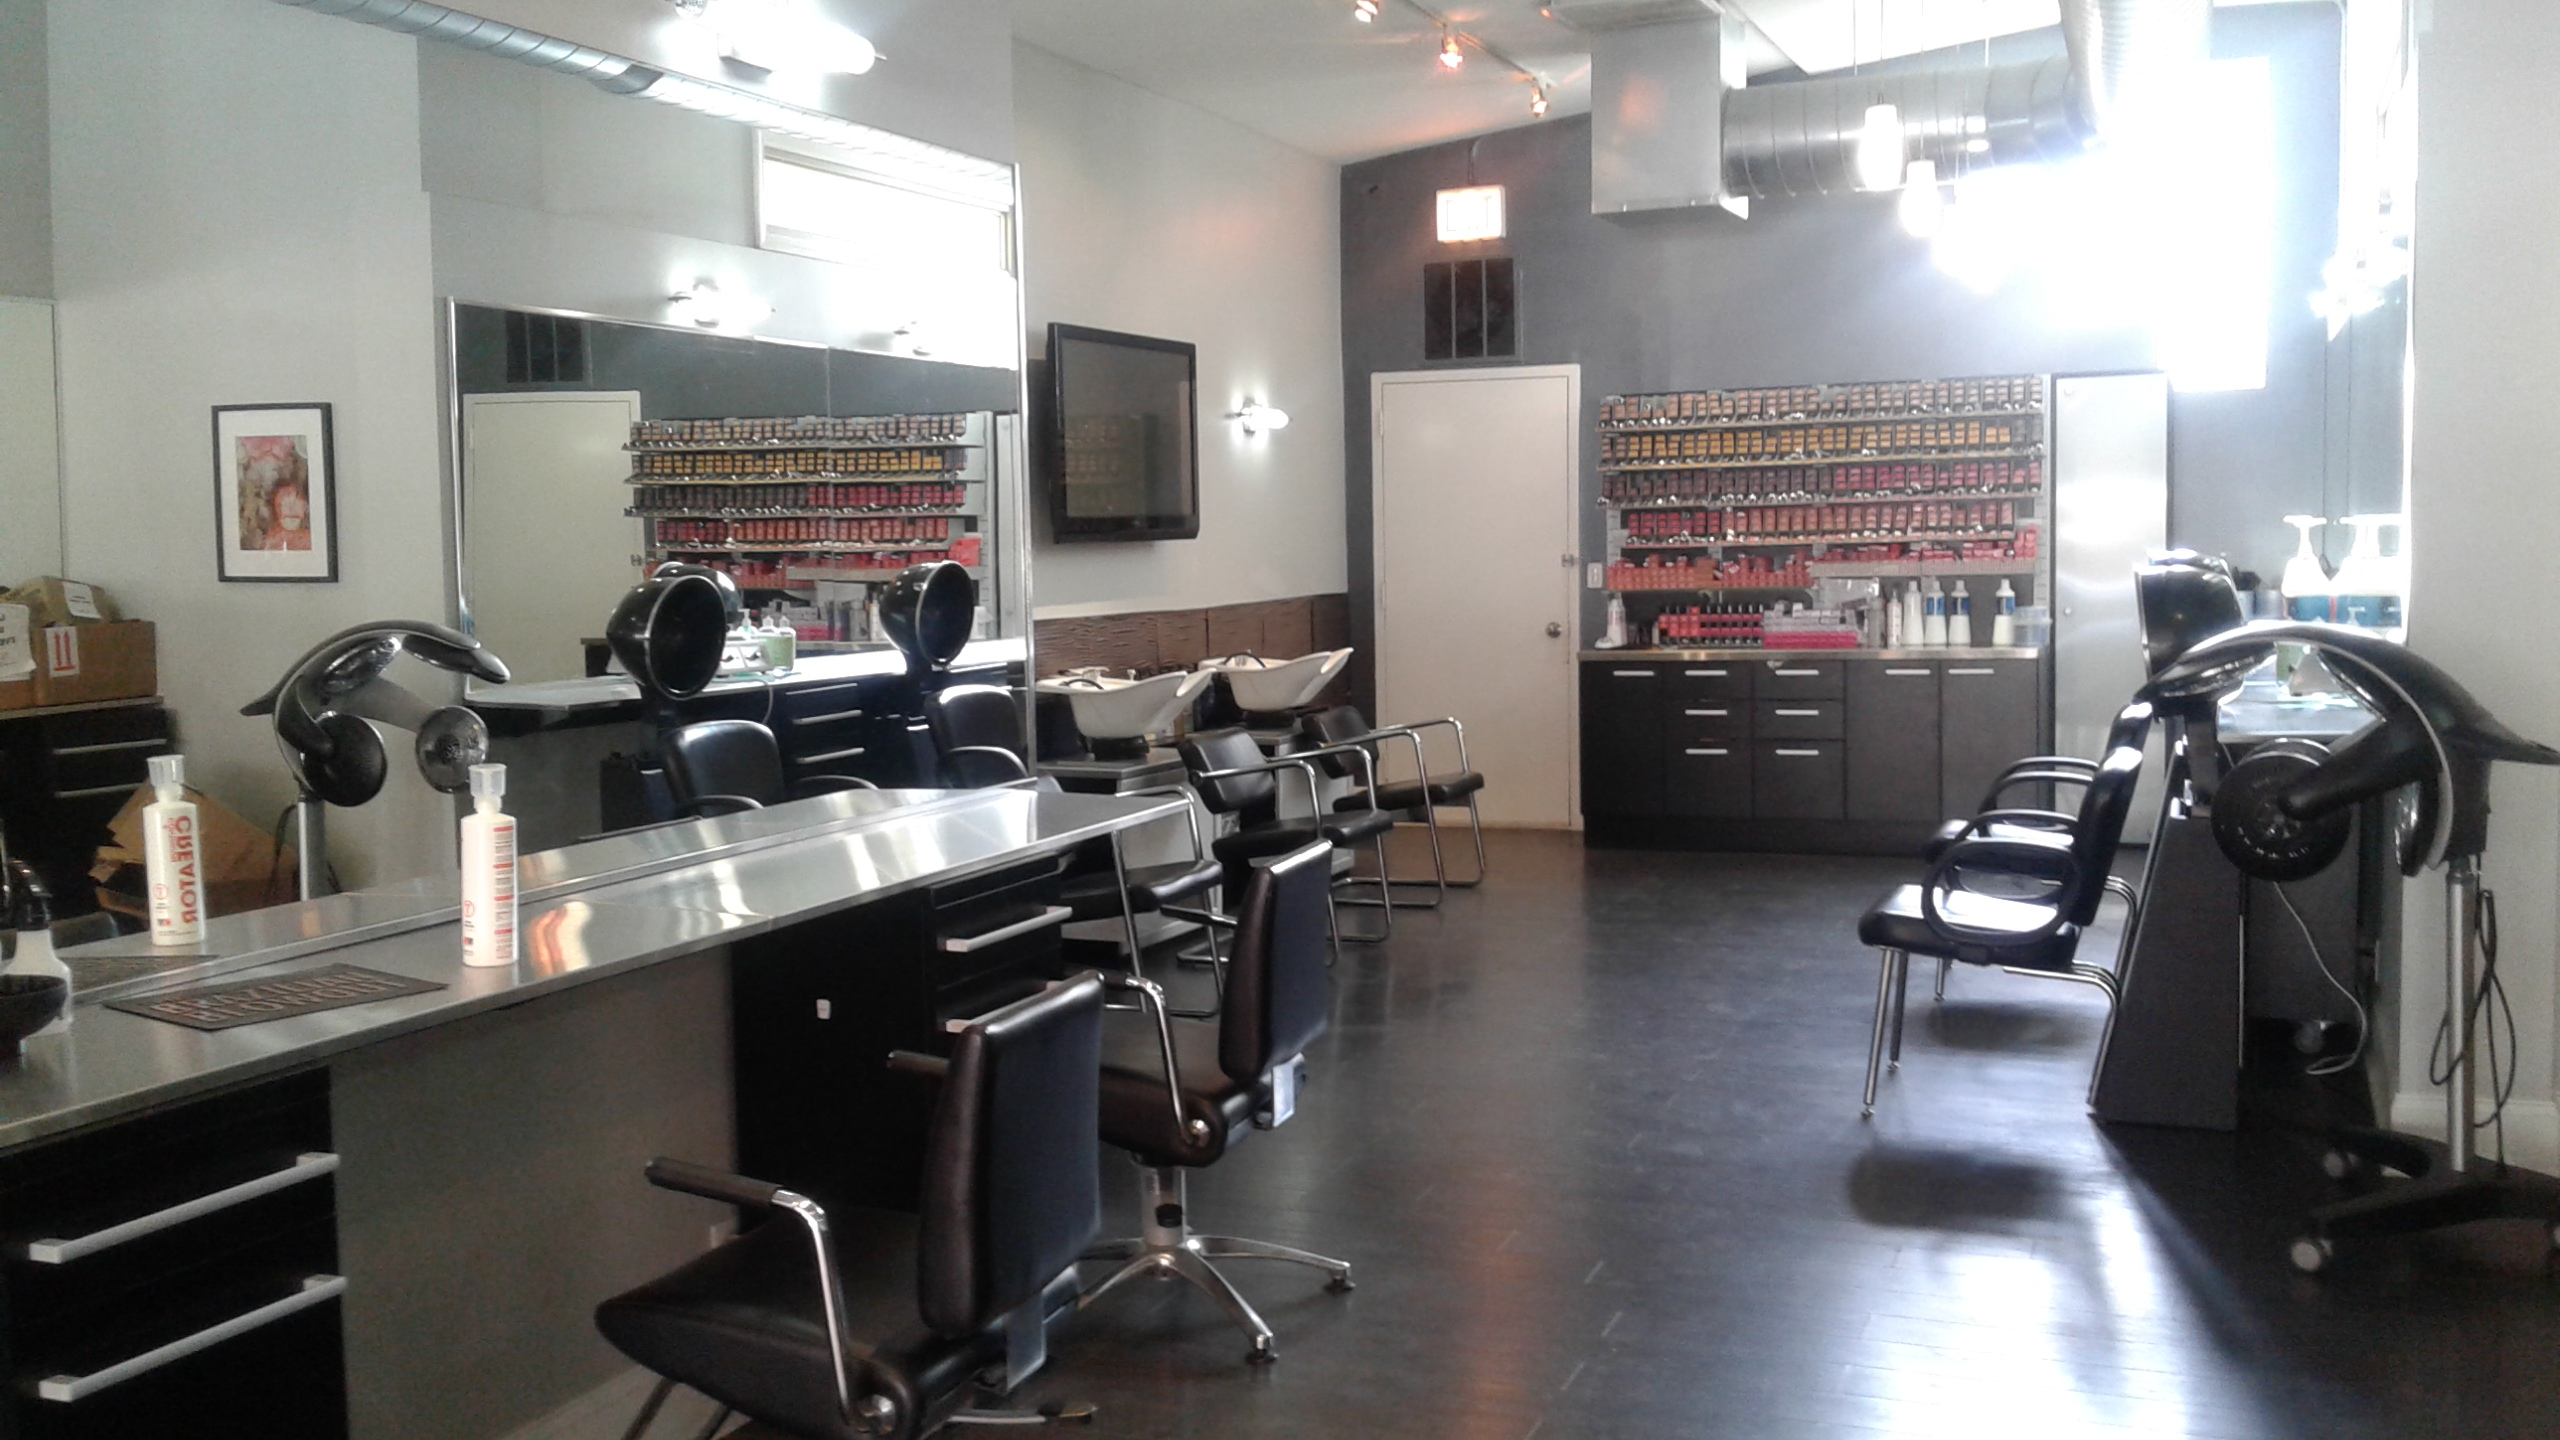 Robert jeffrey hair studio andersonville in chicago il for Dion hair salon